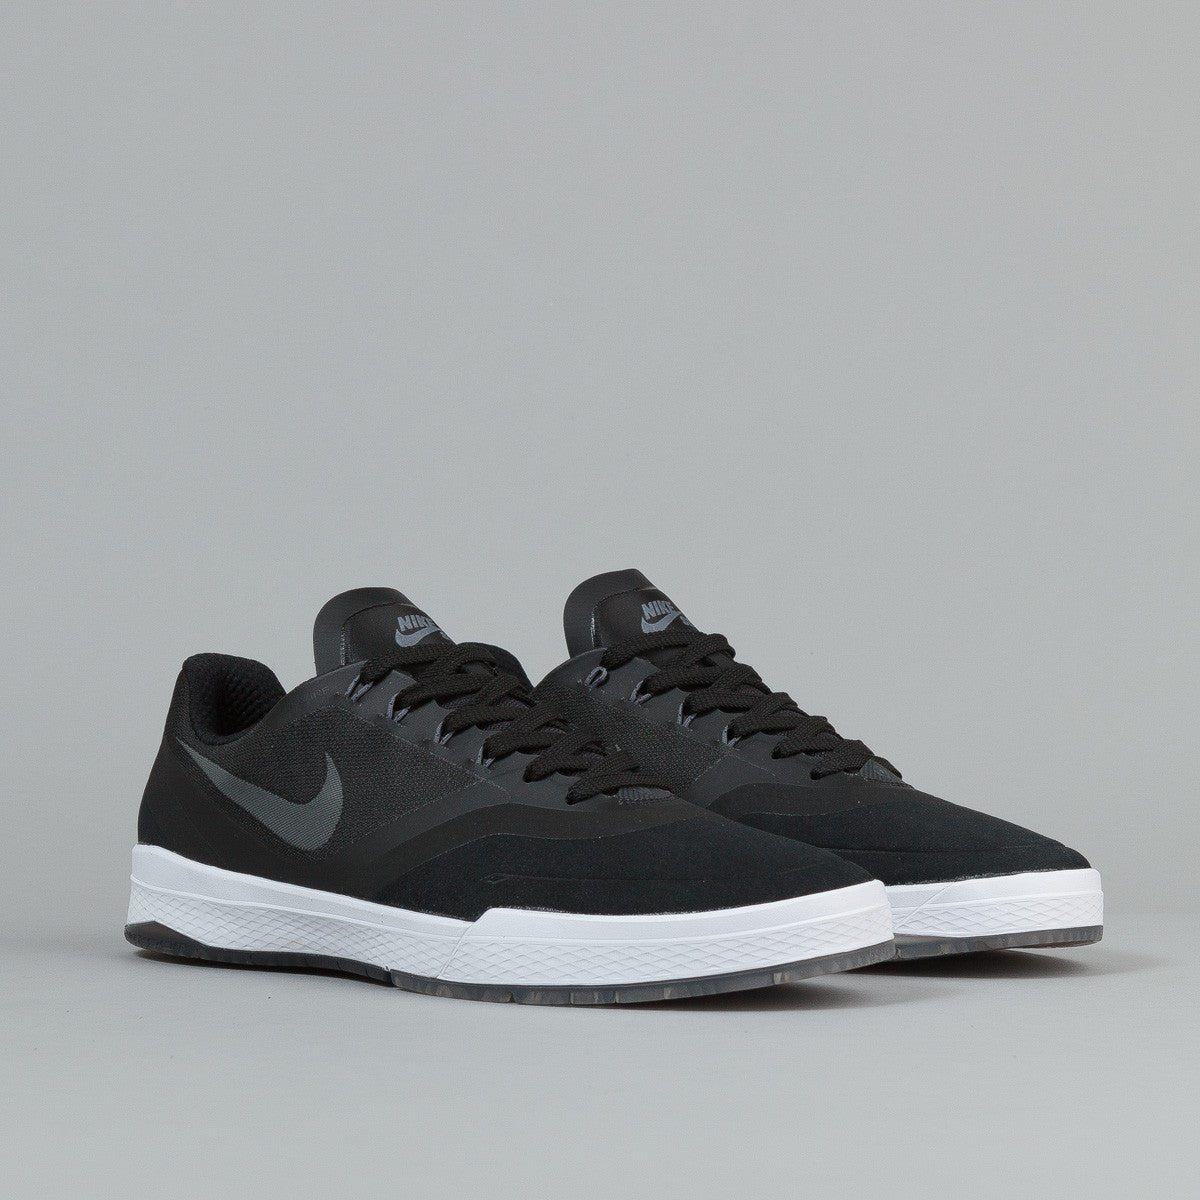 Nike SB Paul Rodriguez 9 Elite Shoes - Black / Cool Grey - White